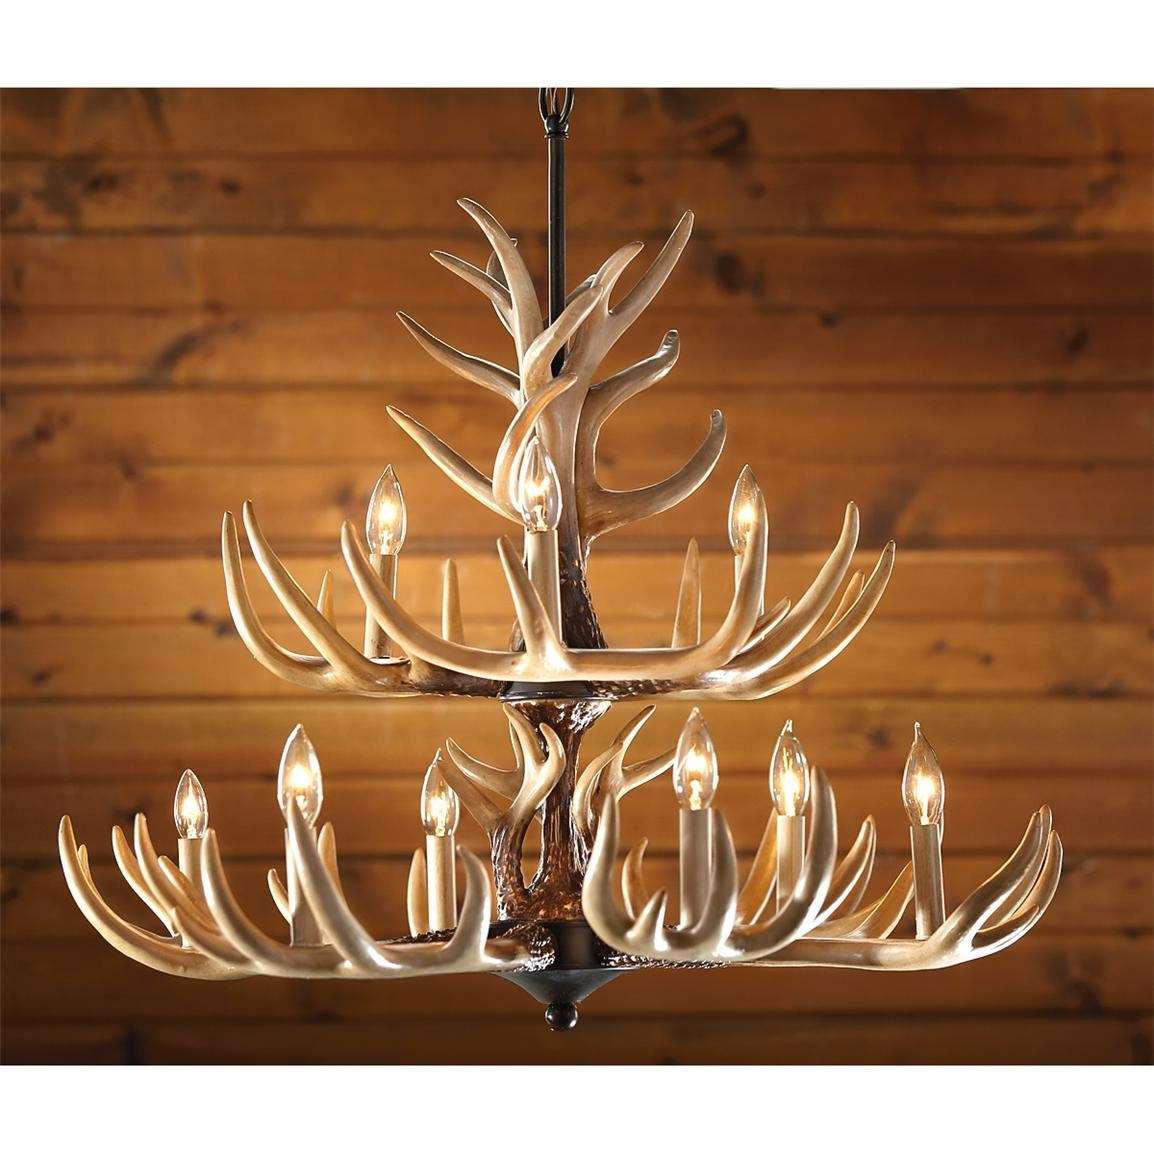 6 Light Antler Chandelier 210035 Lighting At Sportsmans Guide In Antler Chandeliers And Lighting (Image 1 of 15)